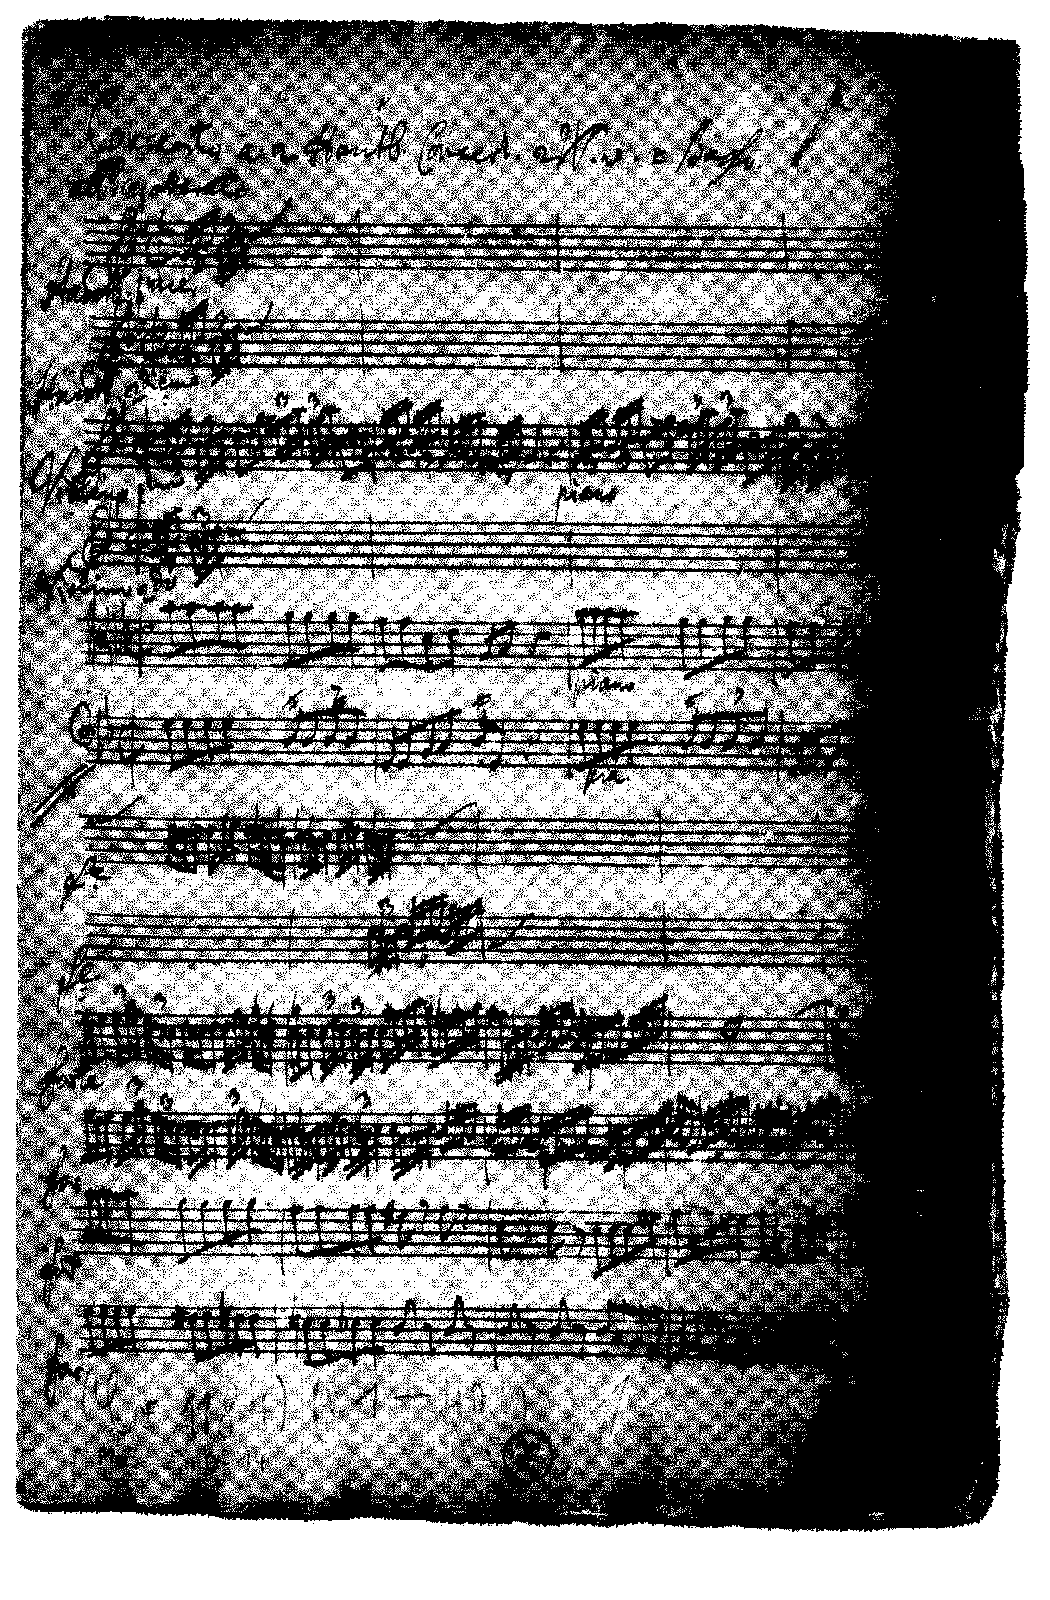 Concerto For 2 Oboes In G Minor Schrank II 33 1 Anonymous